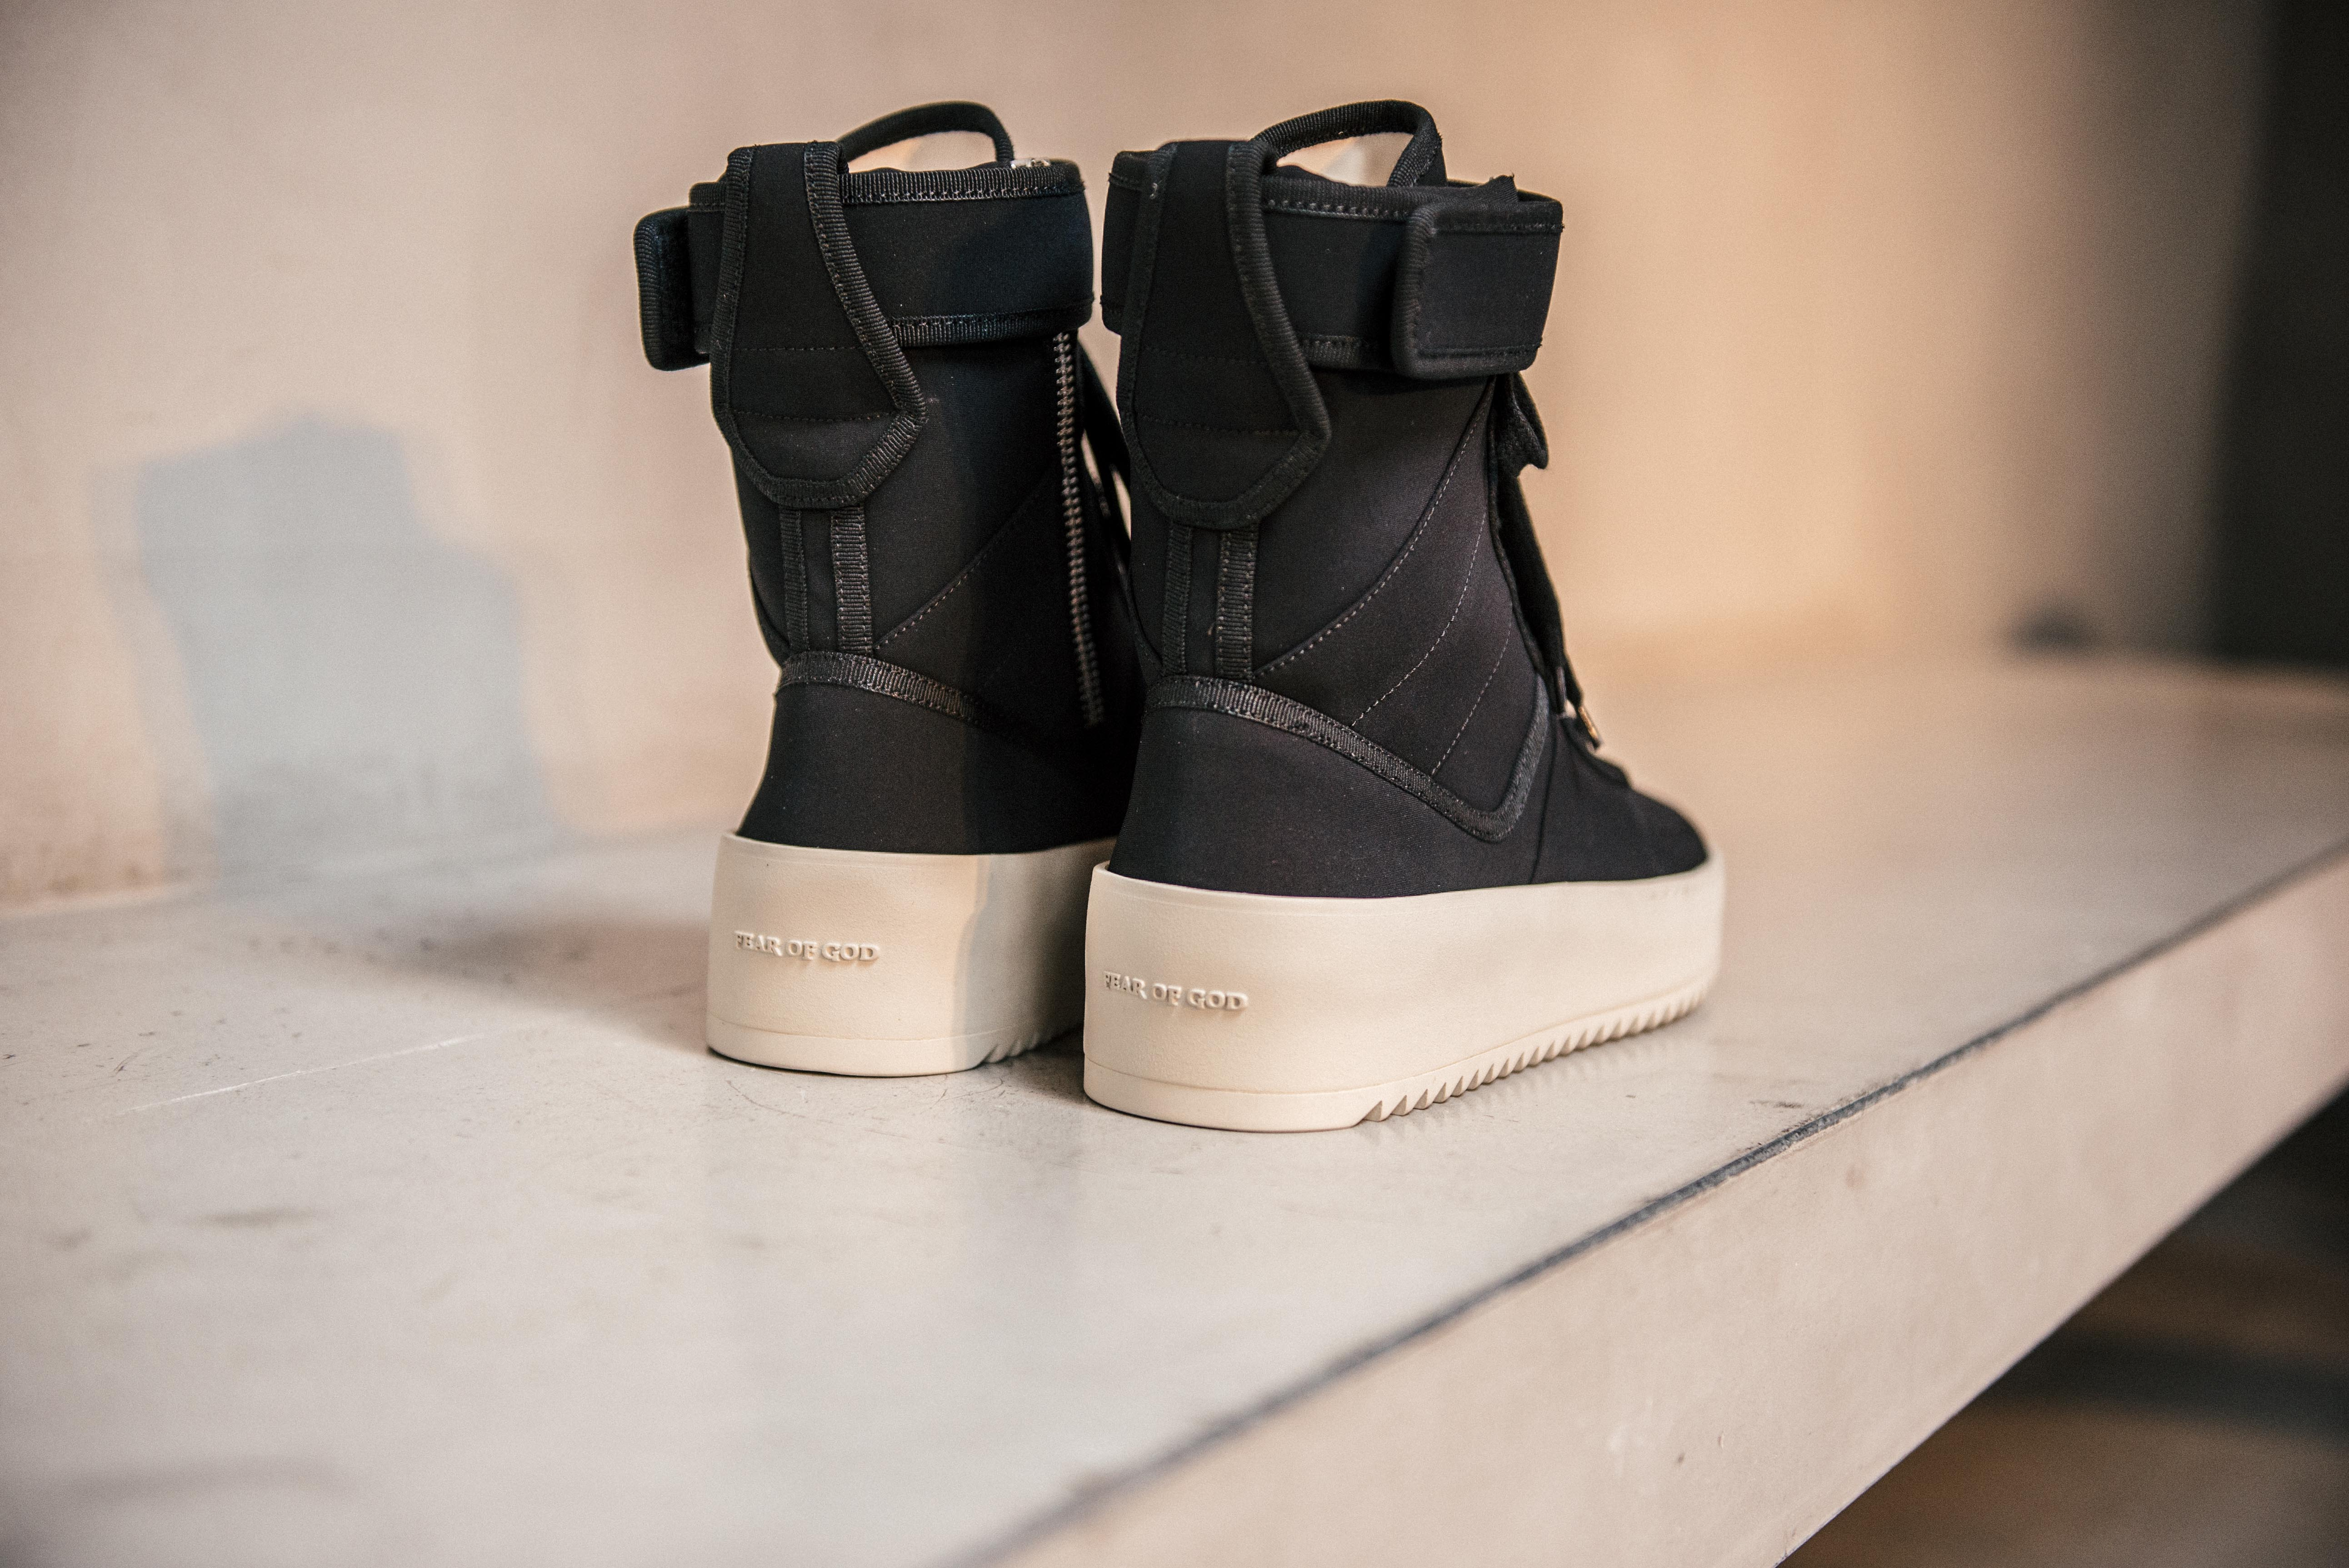 """Fear of God x Chapel NYC """"Chapel of God"""" release at Maxfield in Los Angeles"""